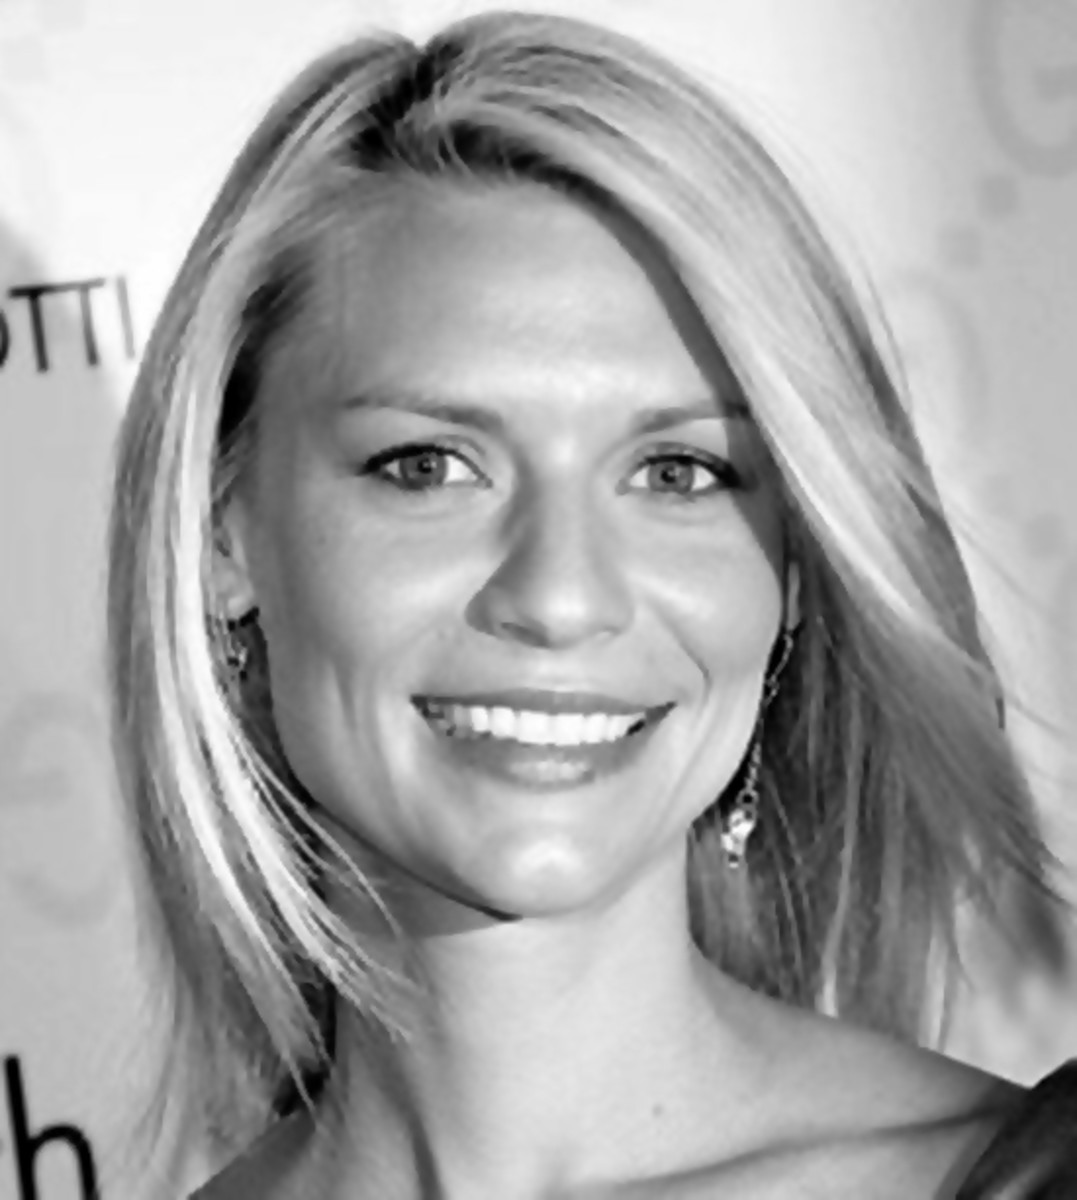 Claire Danes has a refreshing look in this medium length hairstyle that is fun and easy to manage.